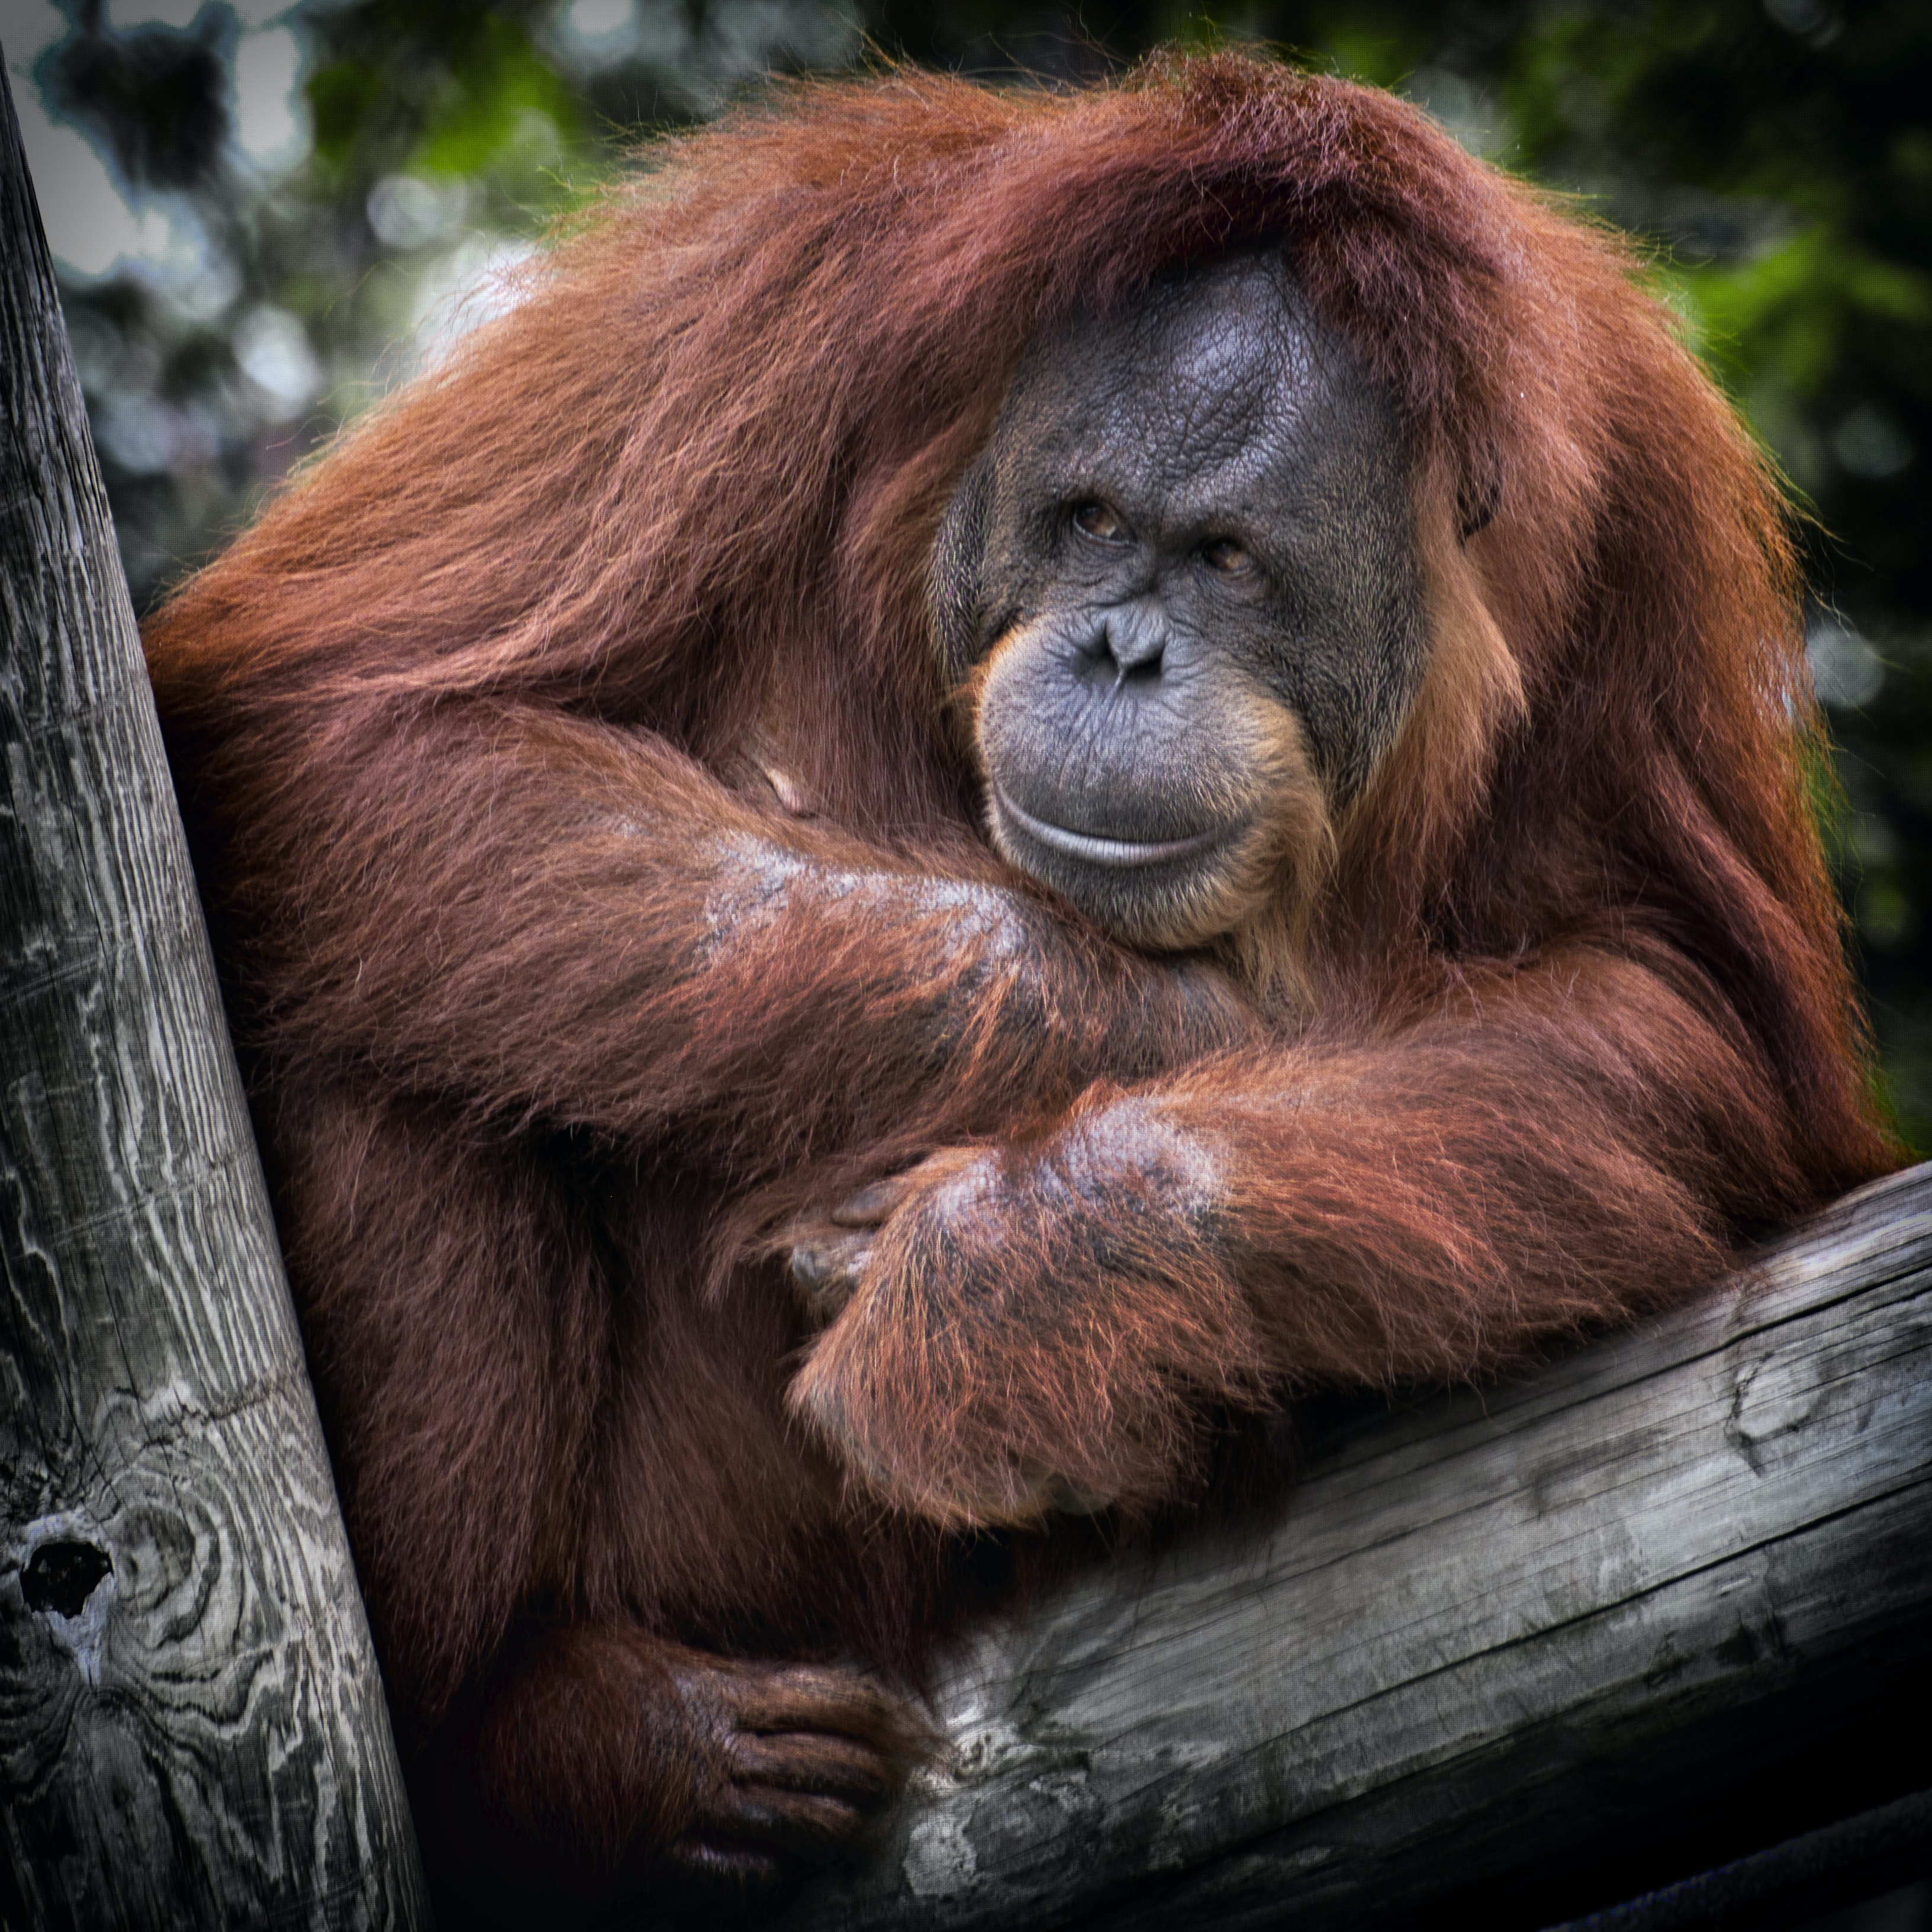 Orangutan balanced up on a tree clutching something at his chest